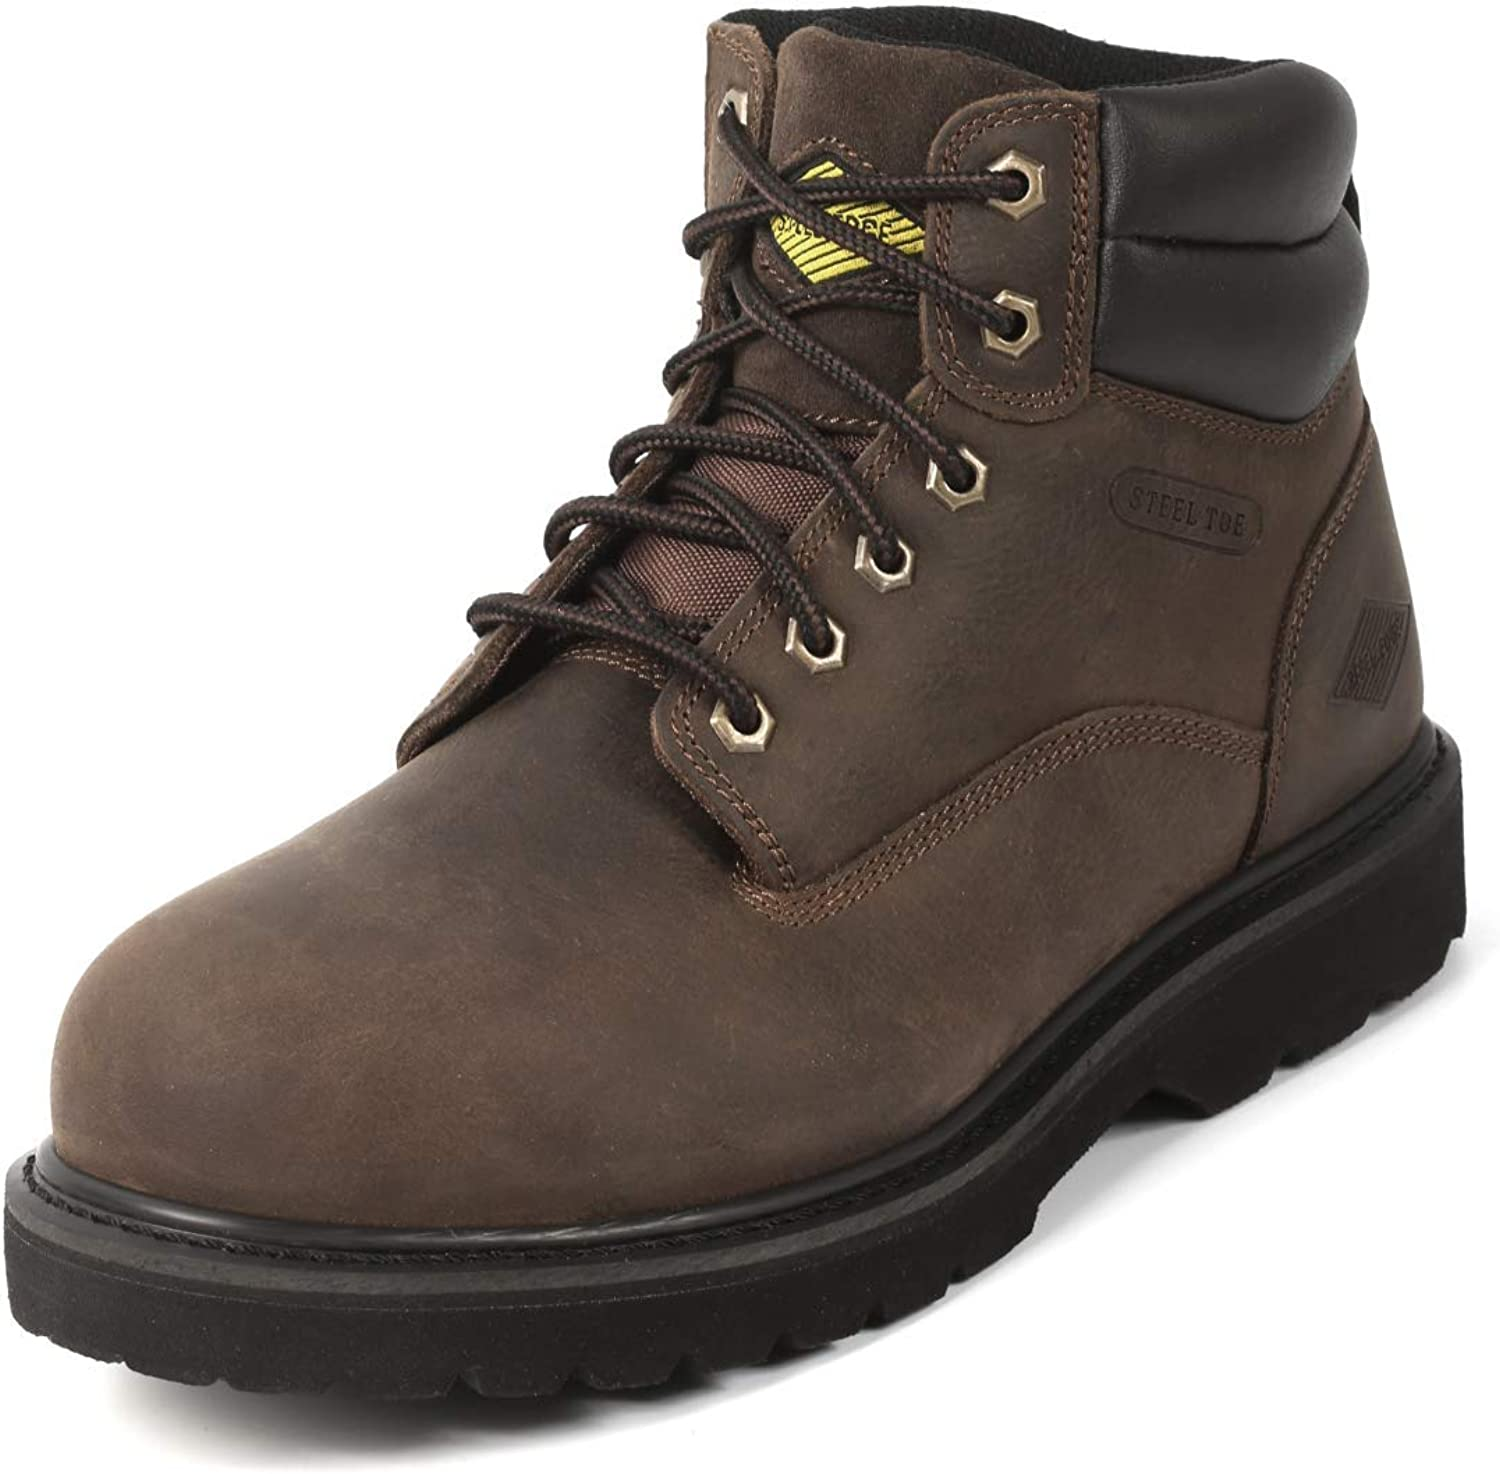 6 Inch Non Slip Steel Toe Work Boots for Men